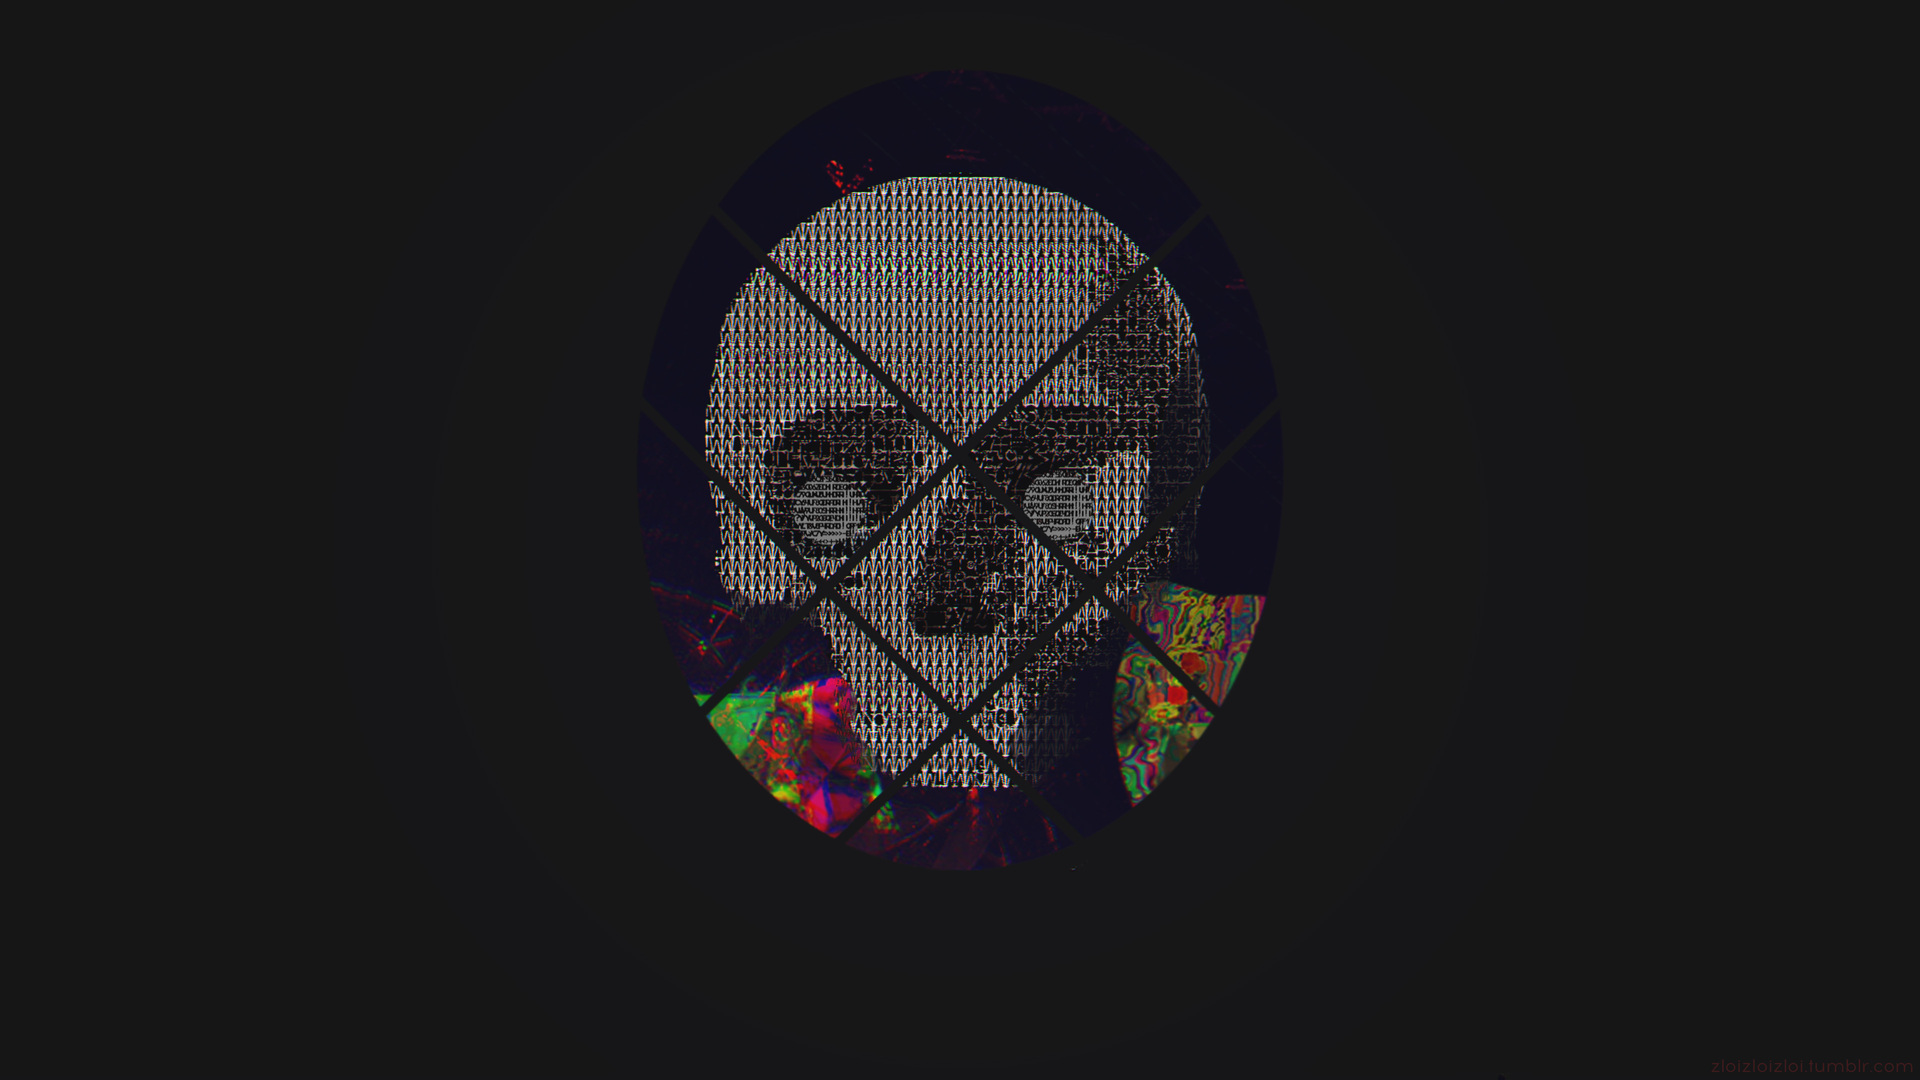 1920x1080 Skull Abstract Art 4k Laptop Full Hd 1080p Hd 4k